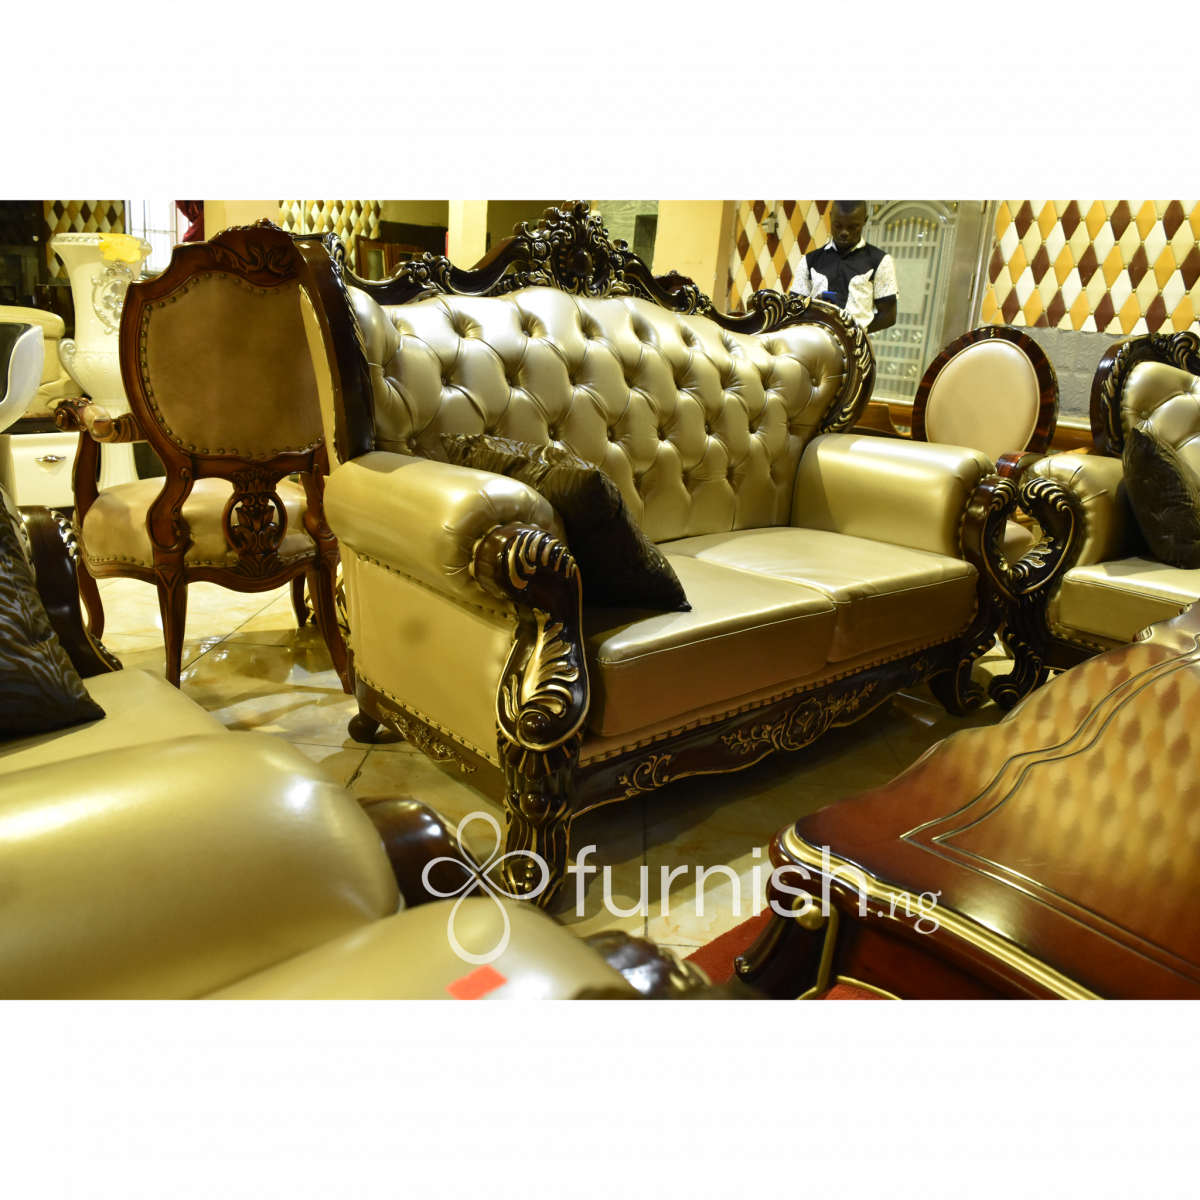 Luxury with animal skin. Royal drawing sofa banner transparent